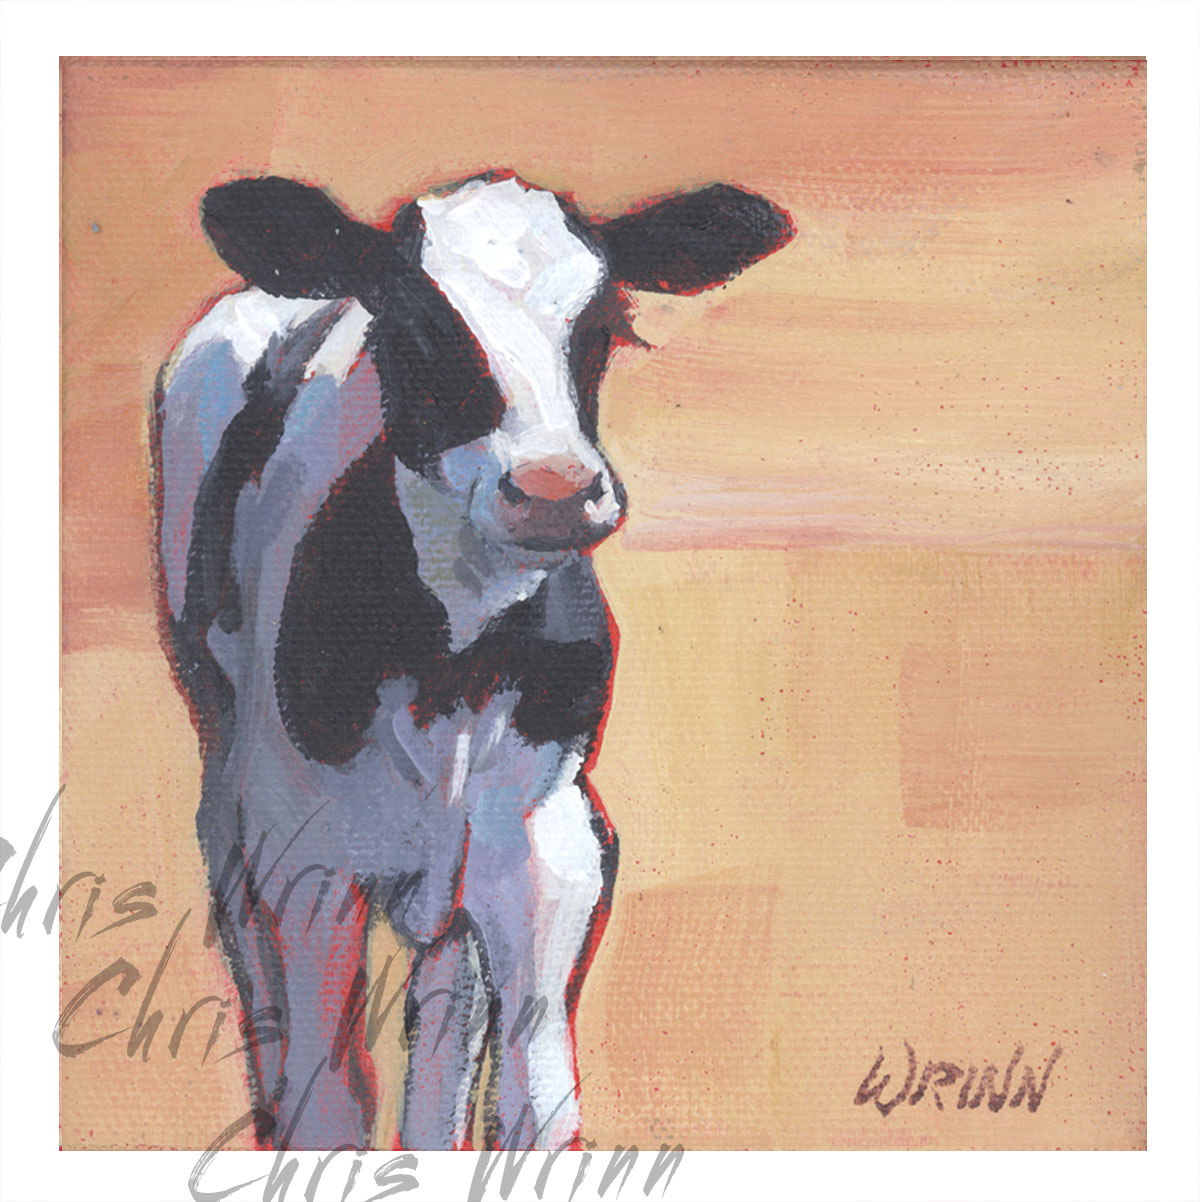 Cow Paintings for Sale 5x5 Inches on Gallery Wrapped Canvas | A New Day!